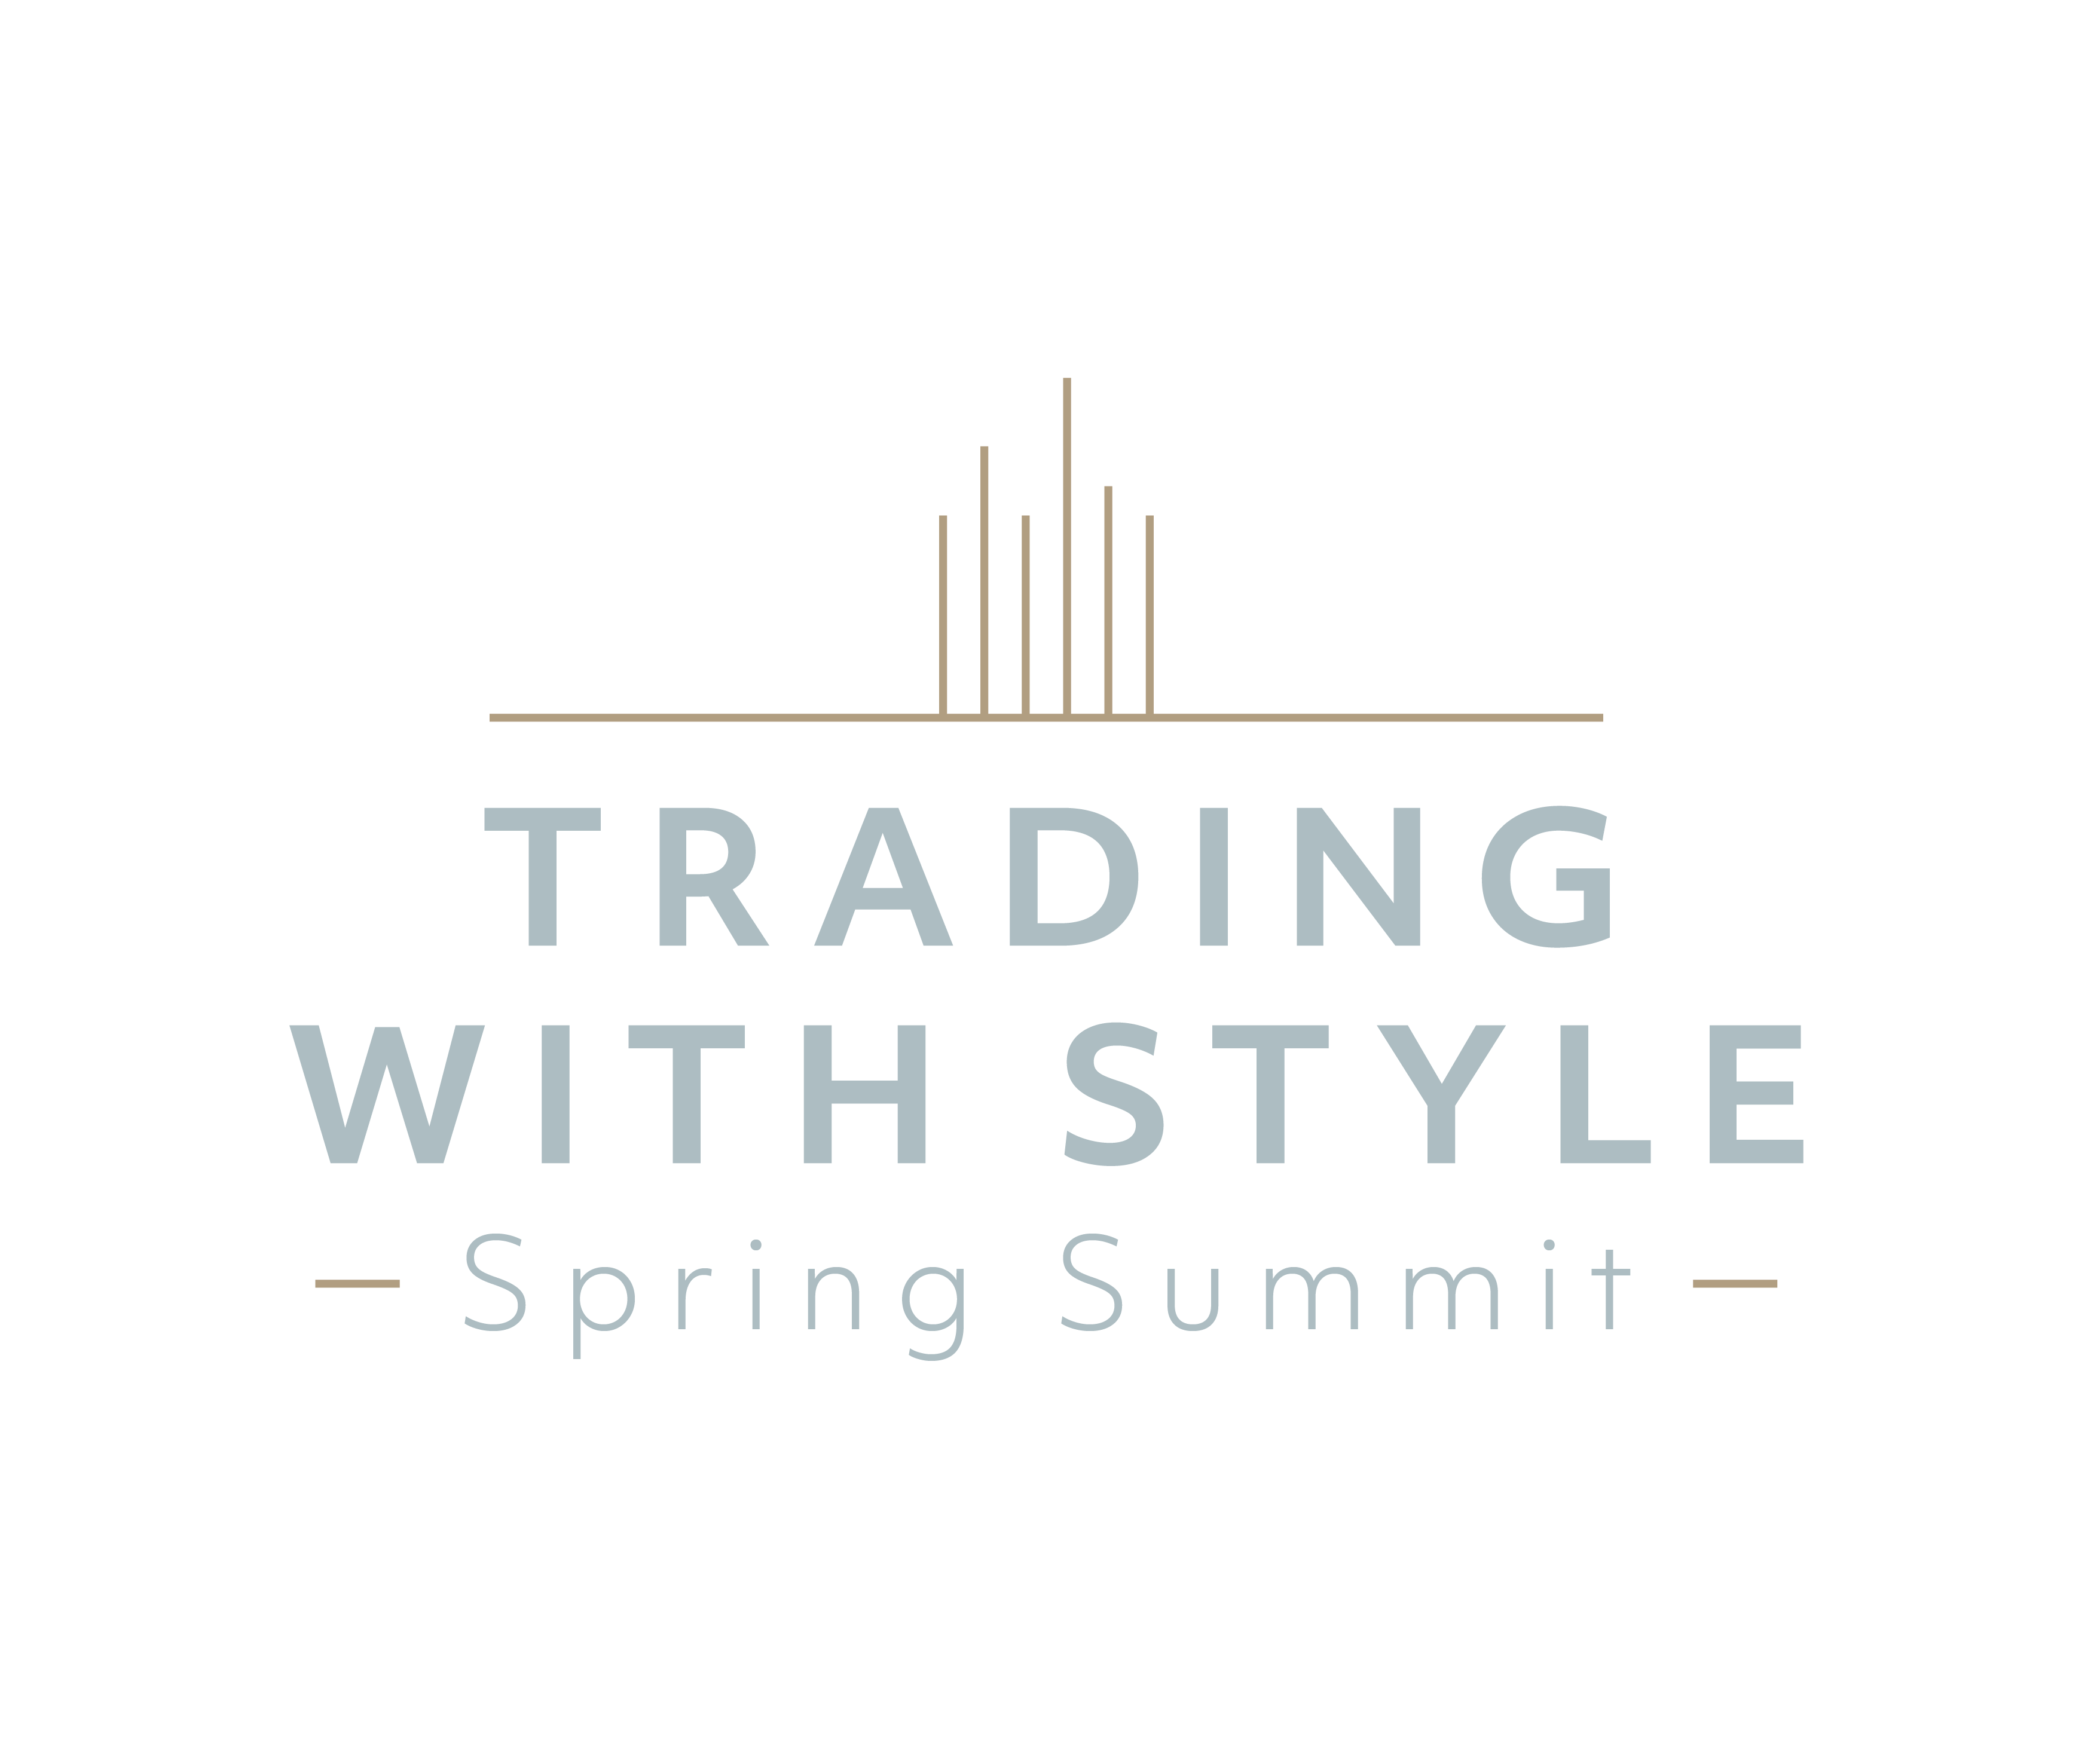 Trading with Style - Spring Summit